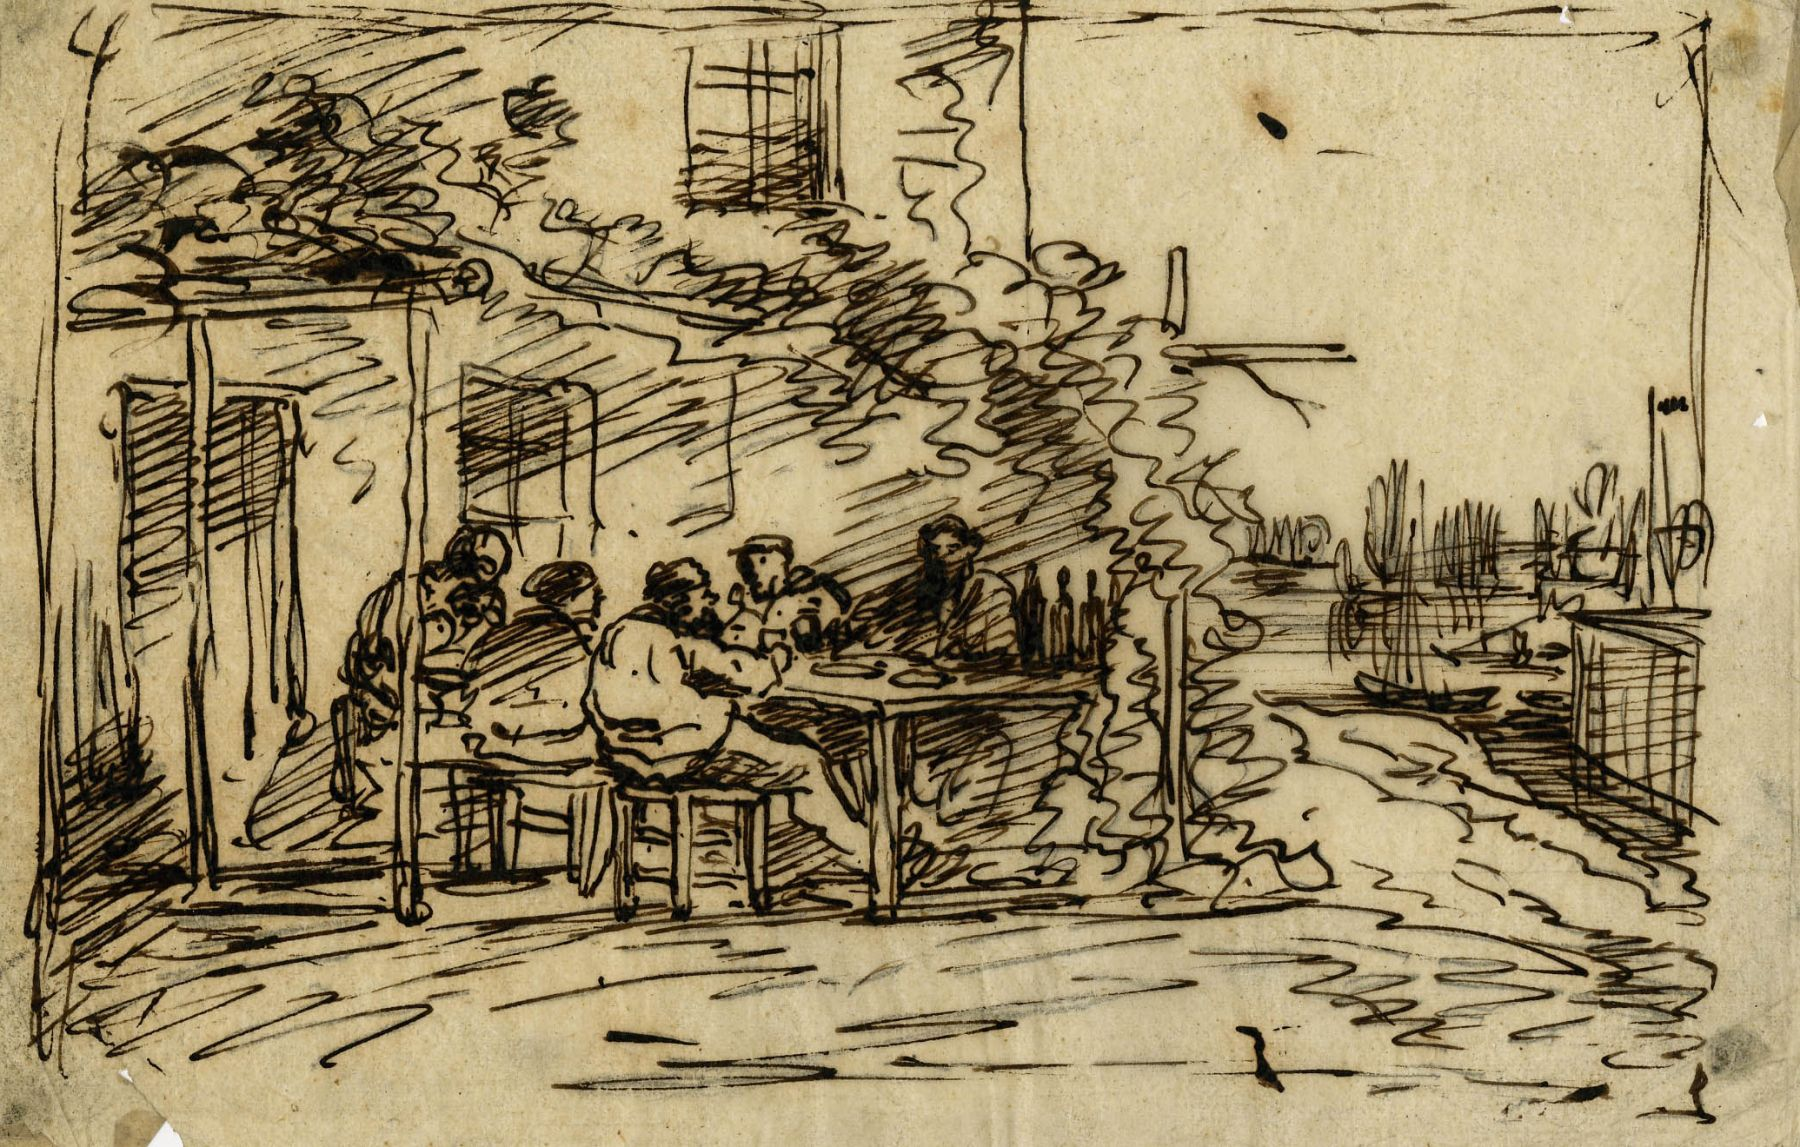 Charles F. Daubigny, The departure lunch in Asnières    Pen and ink on tracing paper  4 5/8 x 7 inches